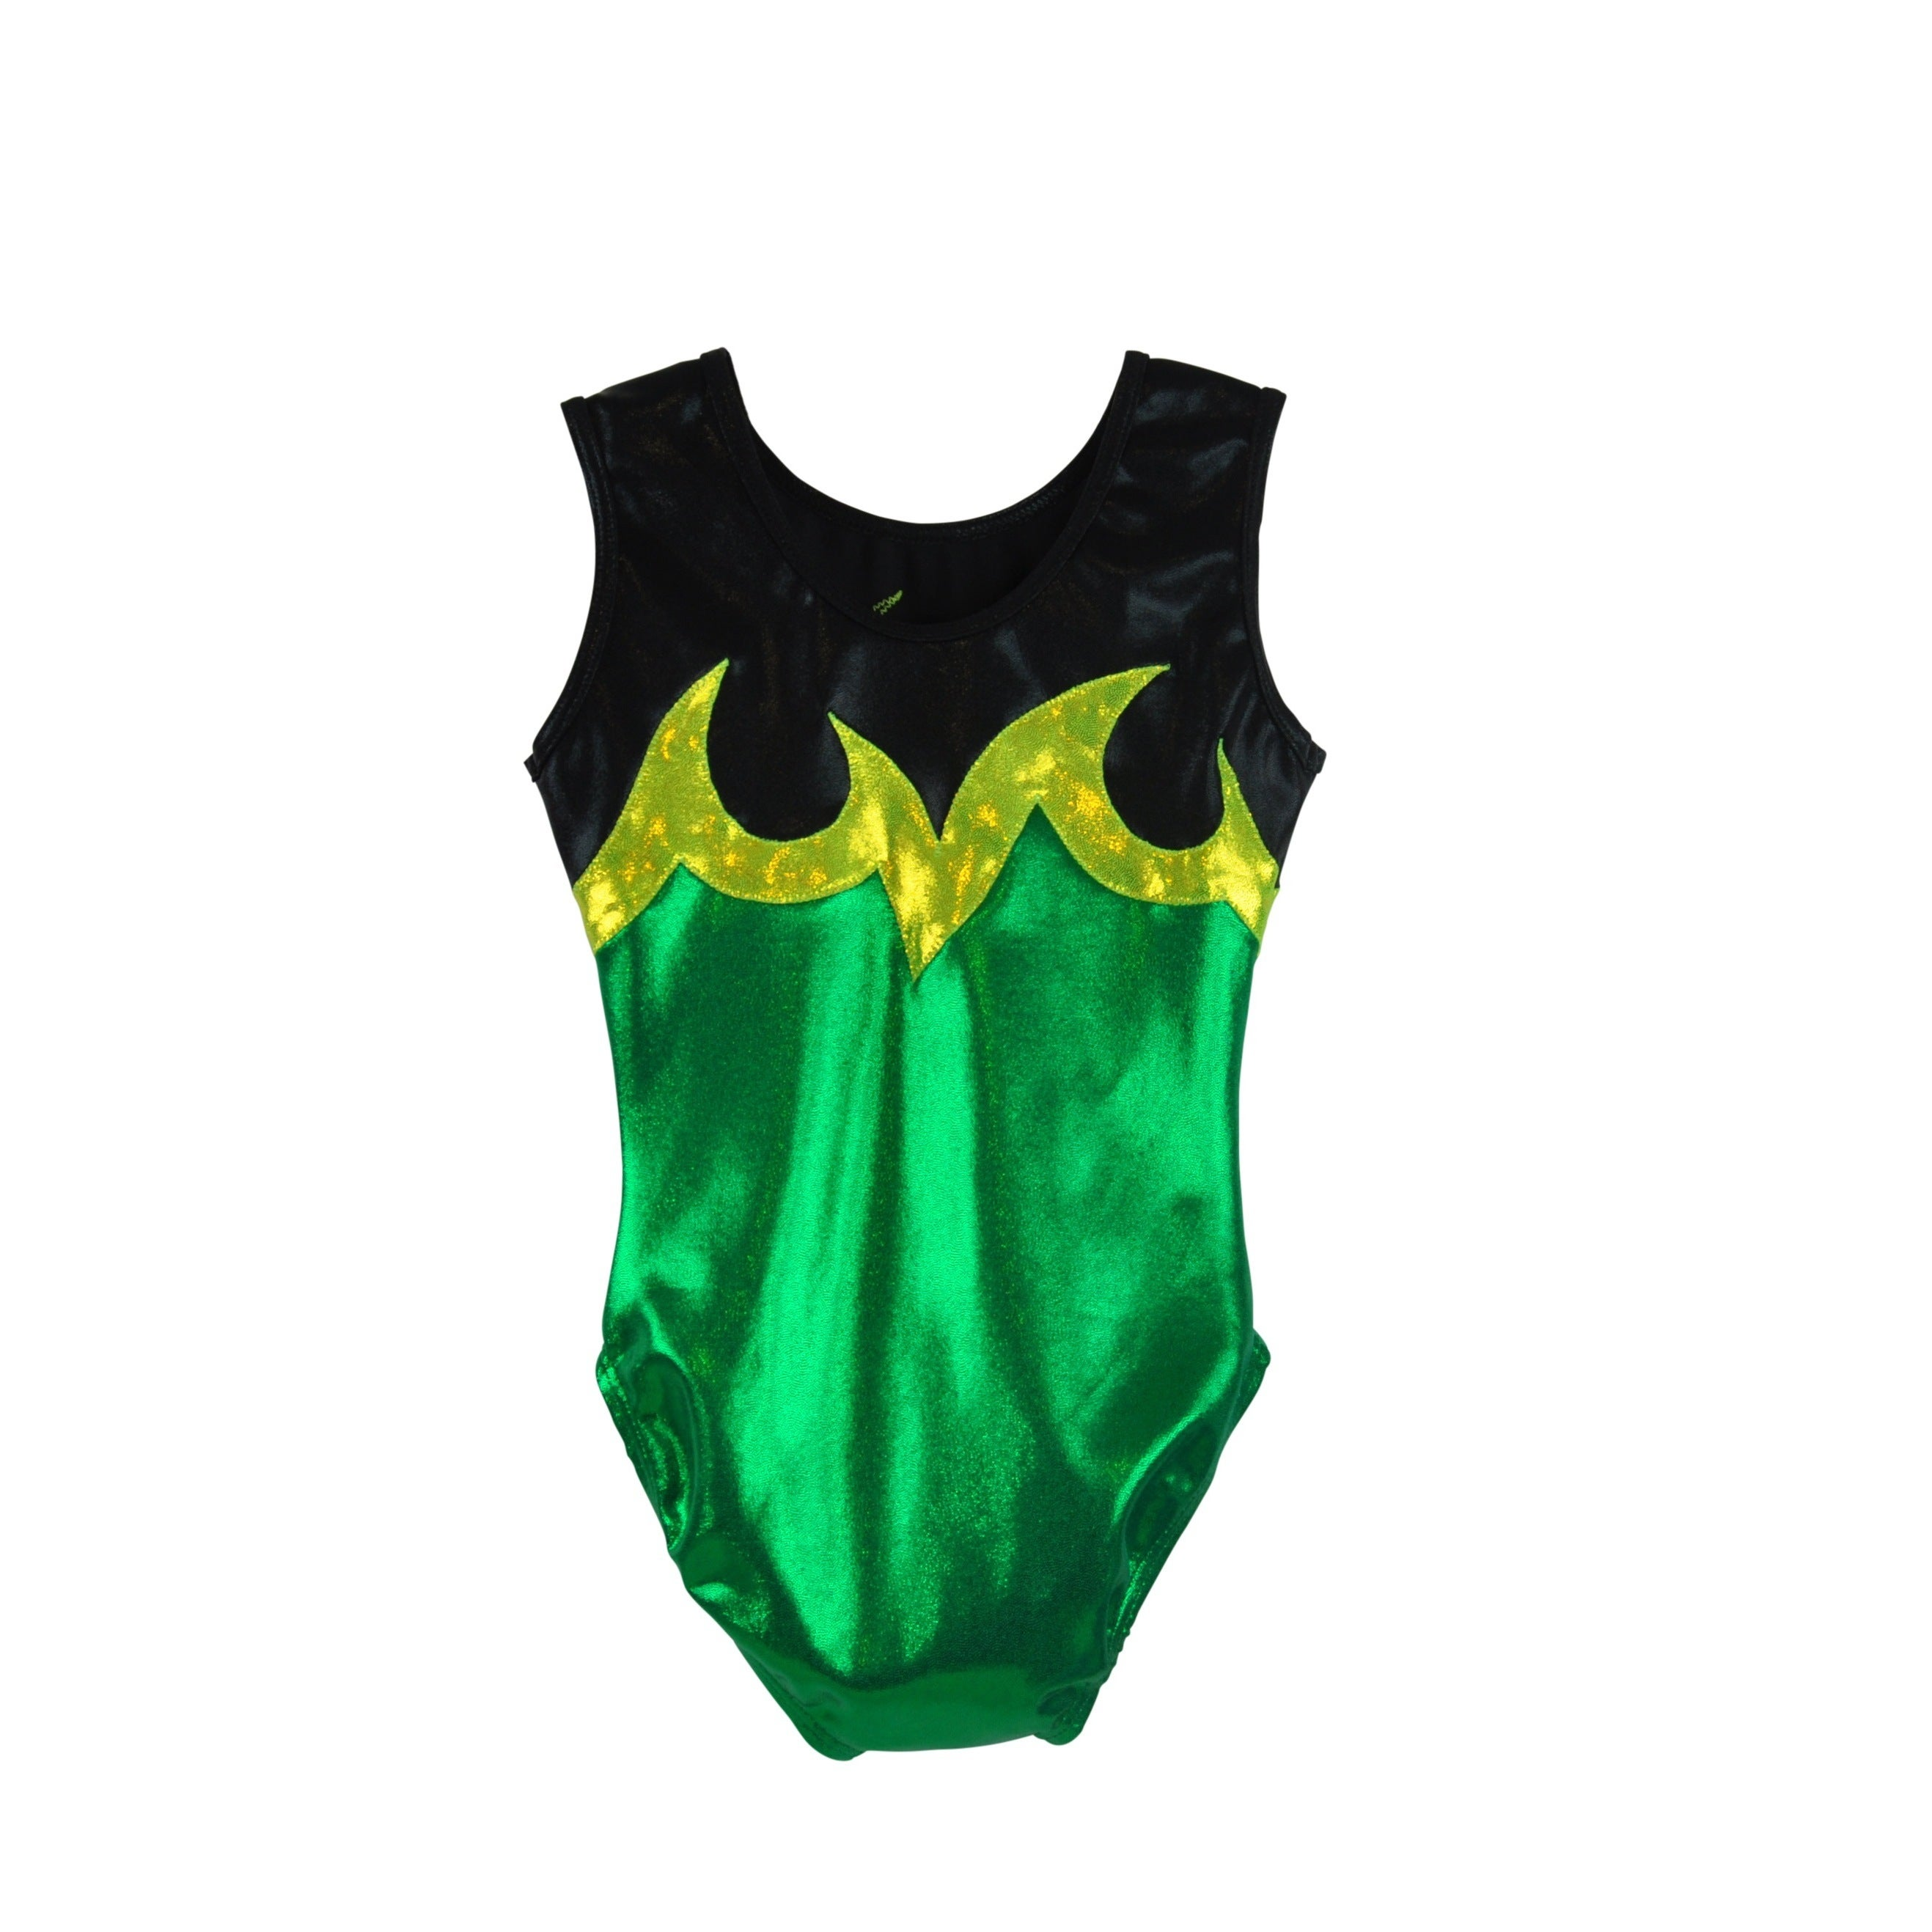 05f9297a6bae Shop Obersee Girl s Girls Gymnastics Leotard - Ace Green - On Sale ...